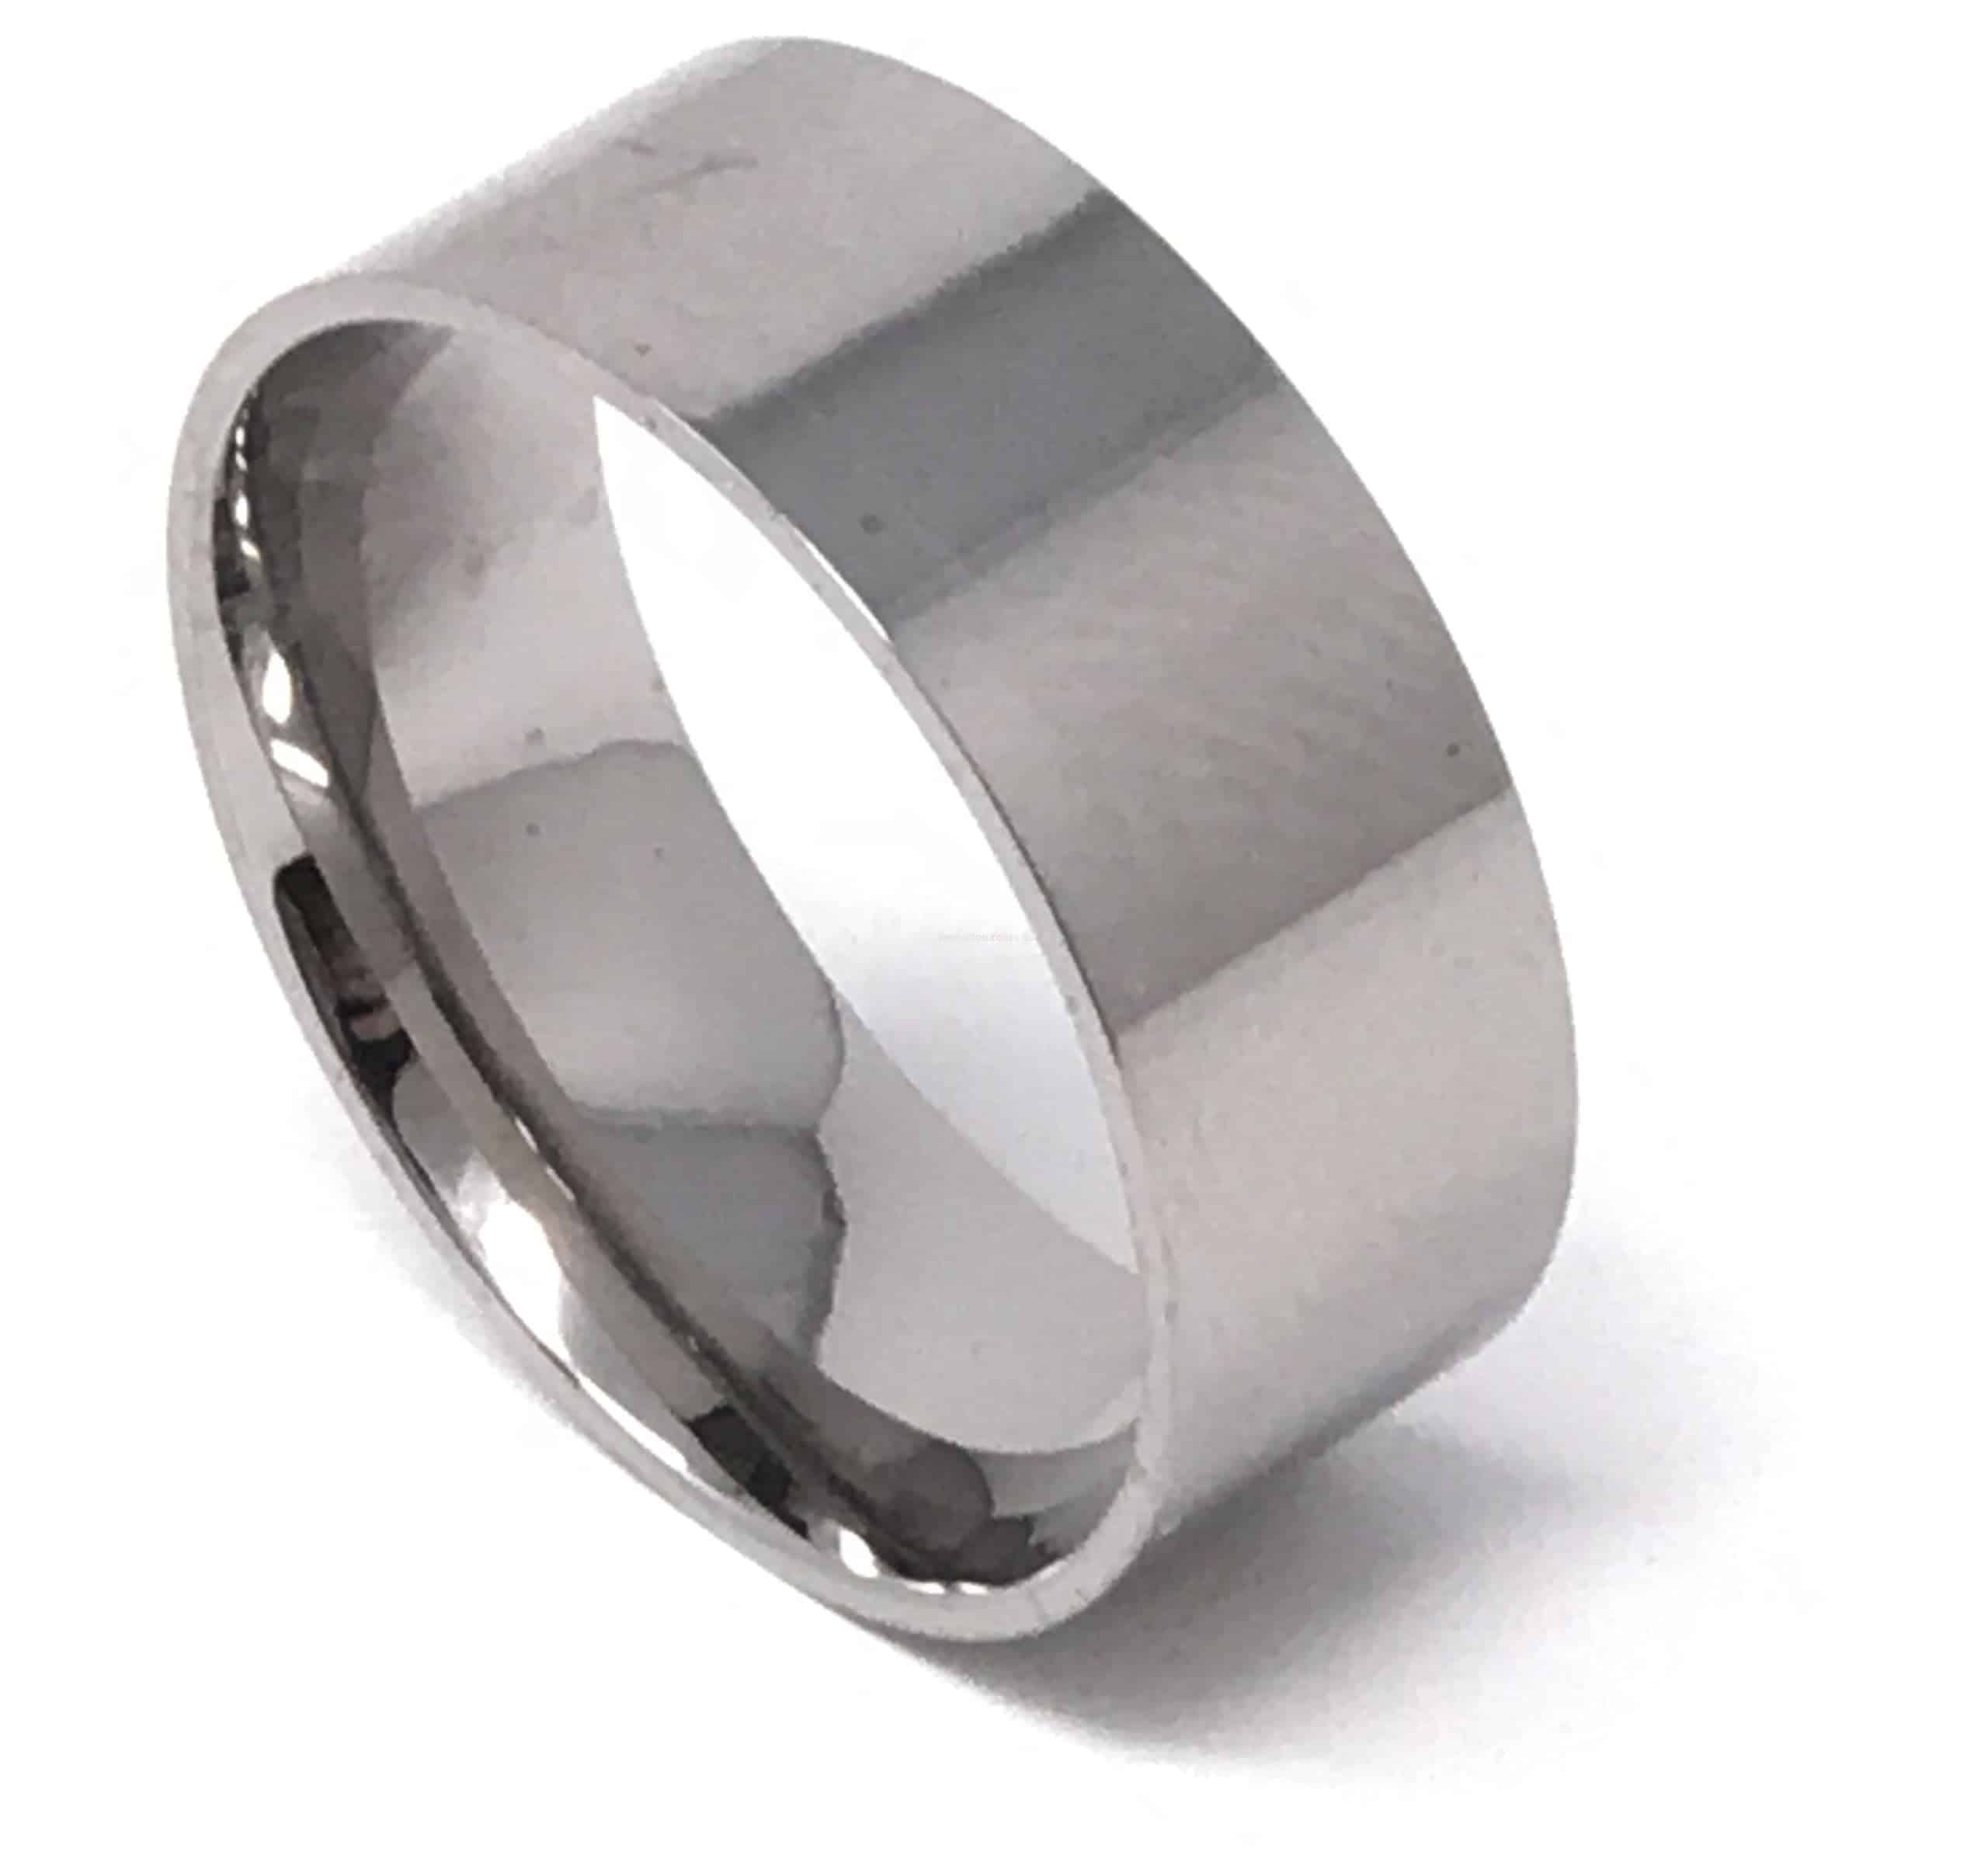 I8 - One piece titanium ring core